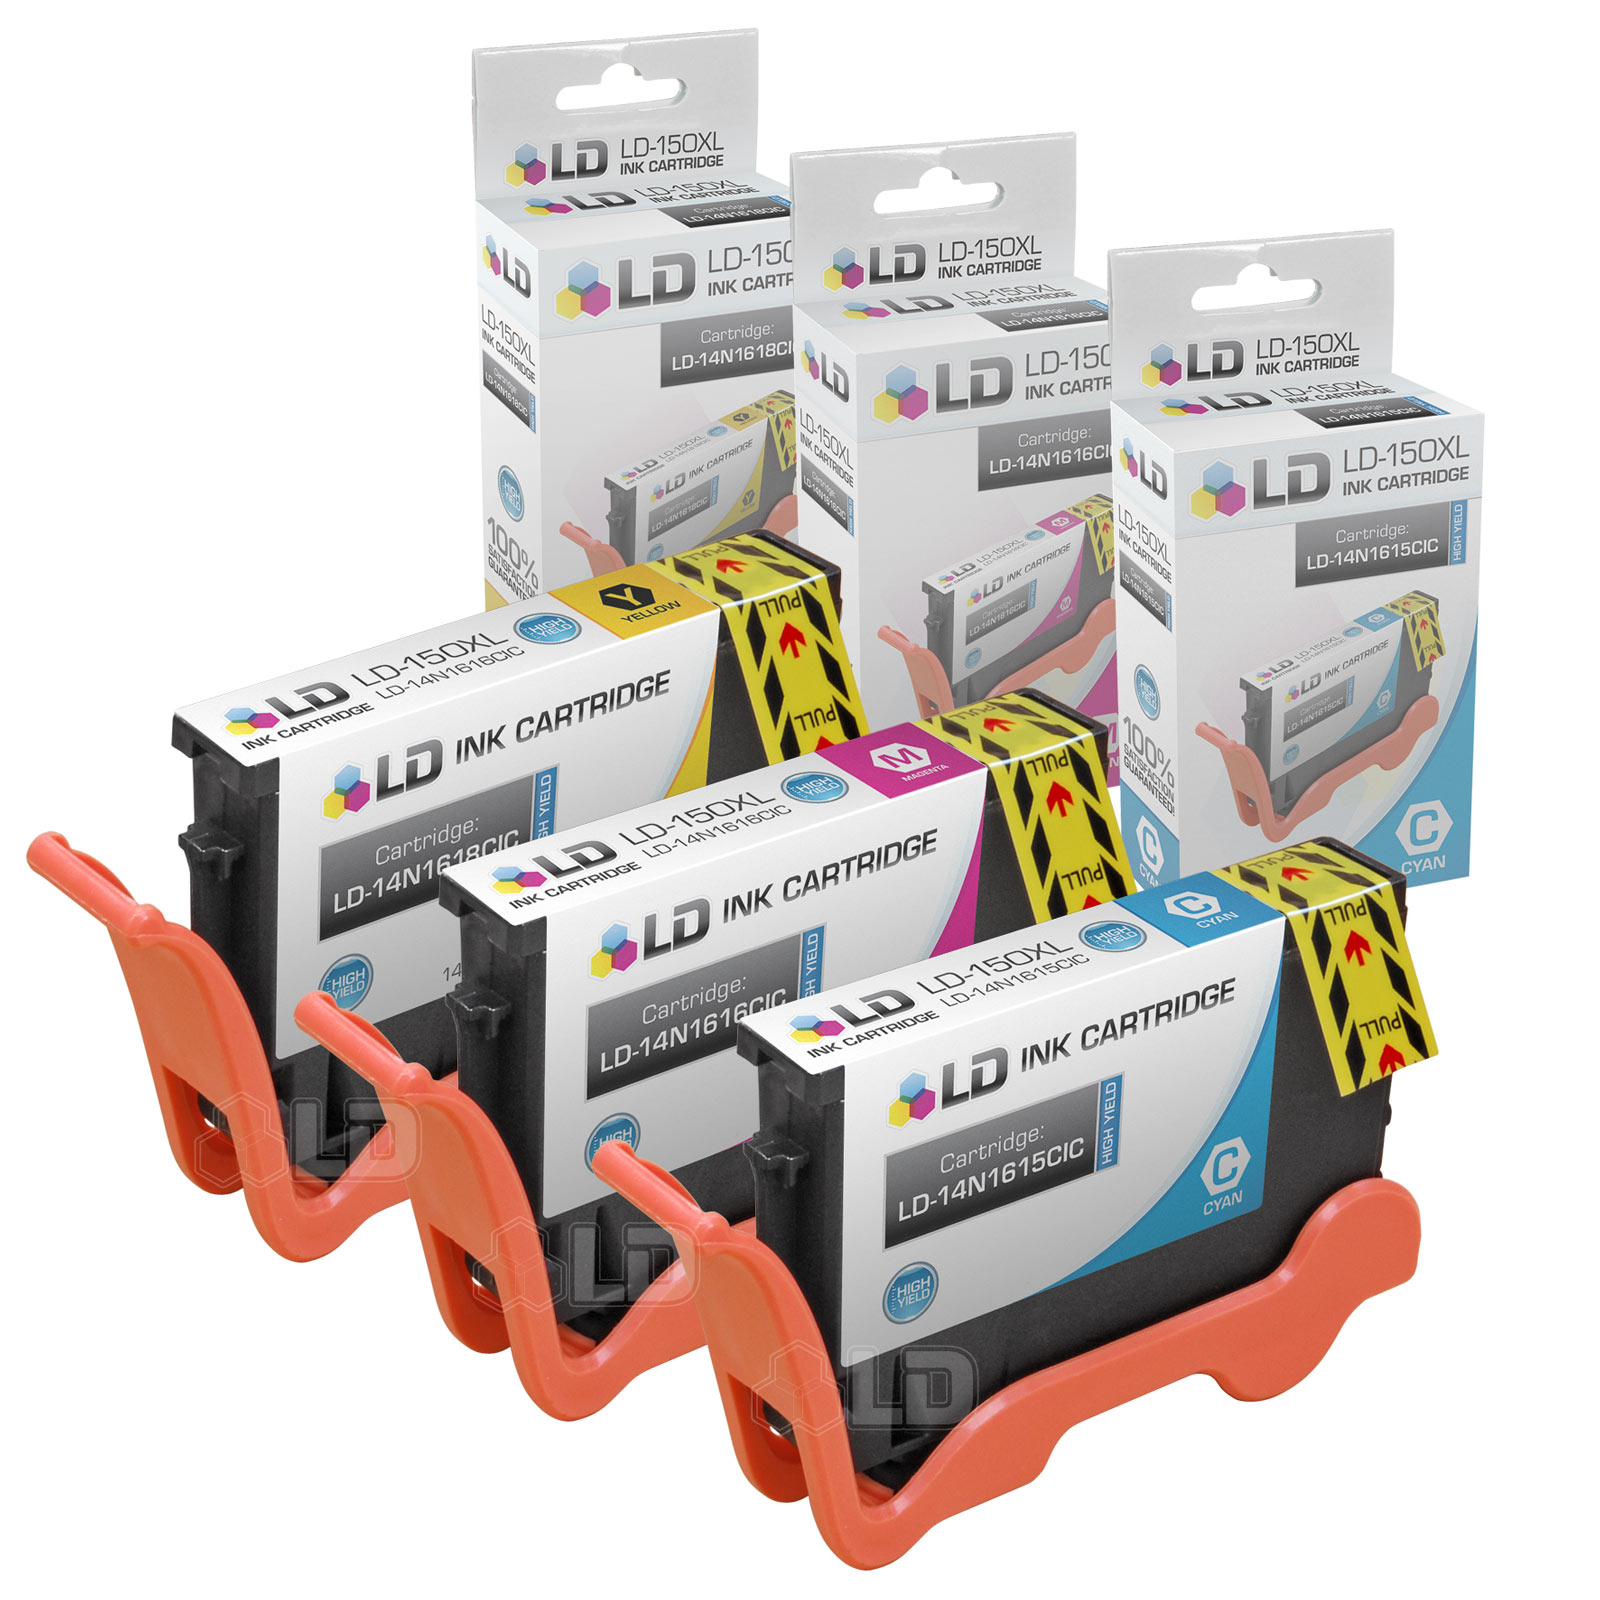 LD Compatible Lexmark 150XL / 150 Set of 3 High Yield Color Inkjet Cartridges: 1 Cyan 14N1615, 1 Magenta 14N1616 and 1